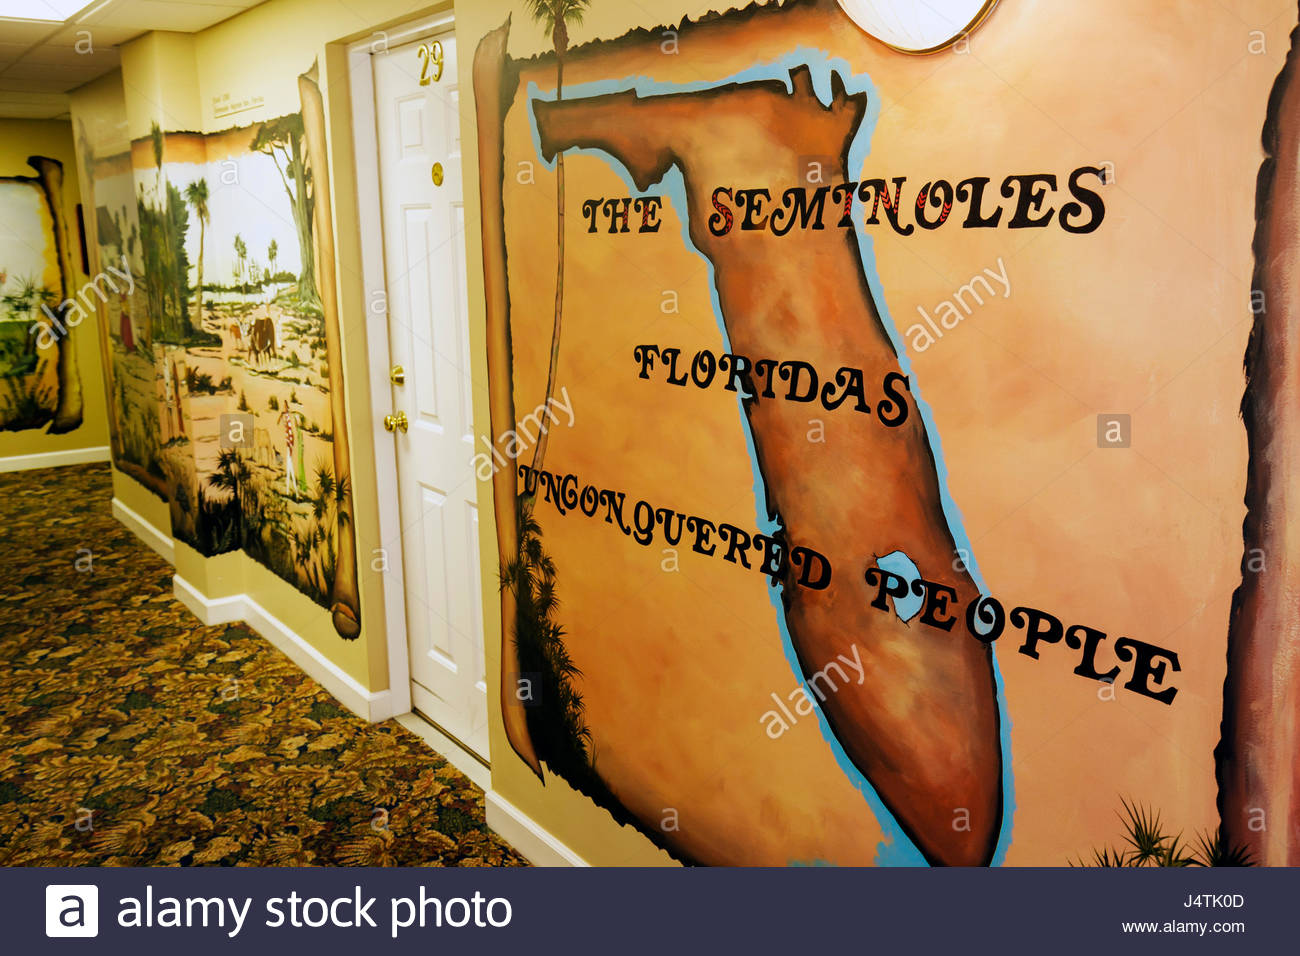 Florida Indiantown Seminole Country Inn historic hotel 1926 National Register of Historic Places lodging interior - Stock Image